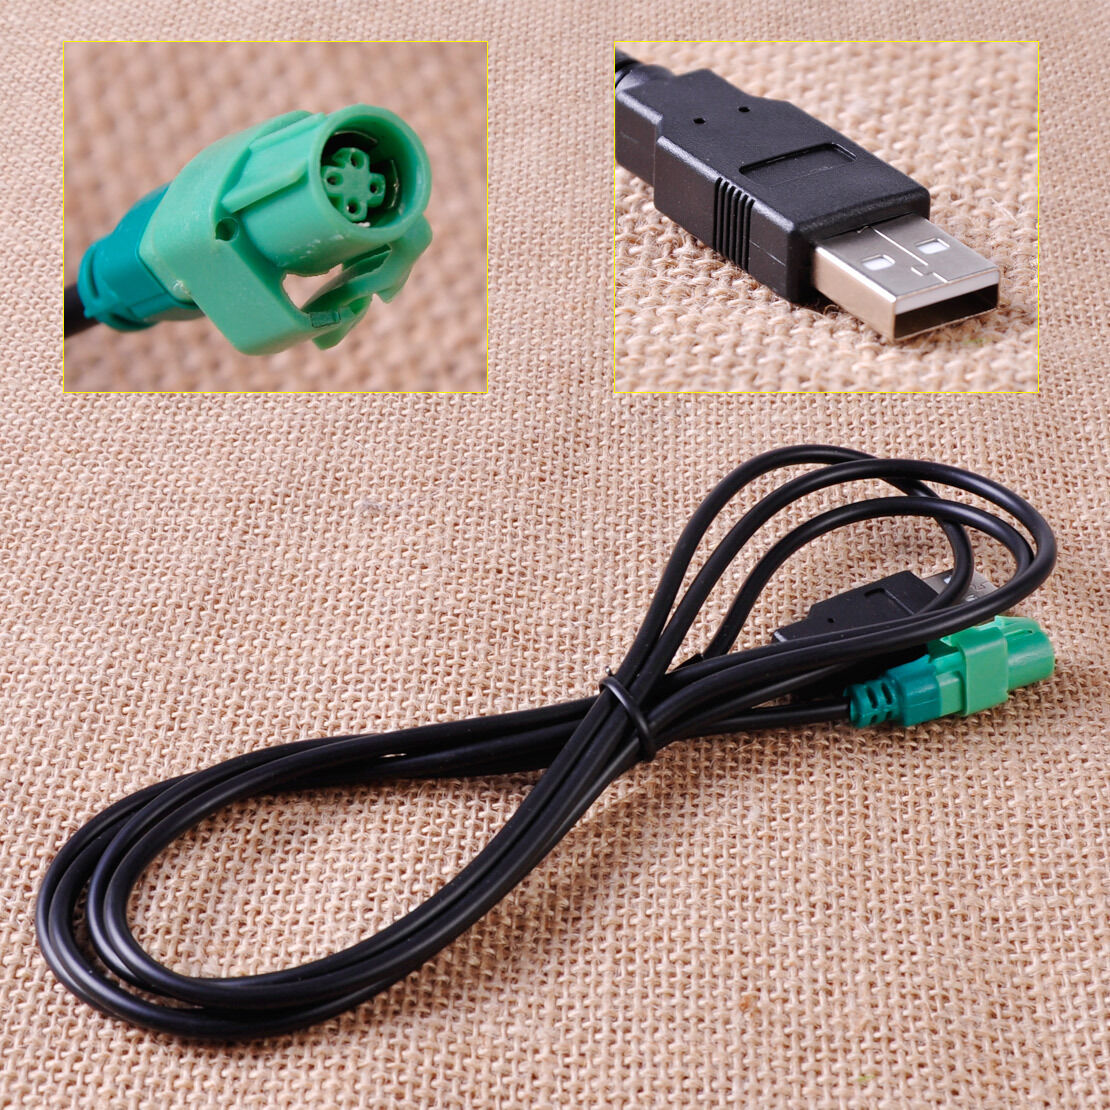 4 Pin Wire Harness Usb Male Head Cable Aux Adapter Fit For Vw Golf 1 Of 4only 5 Available